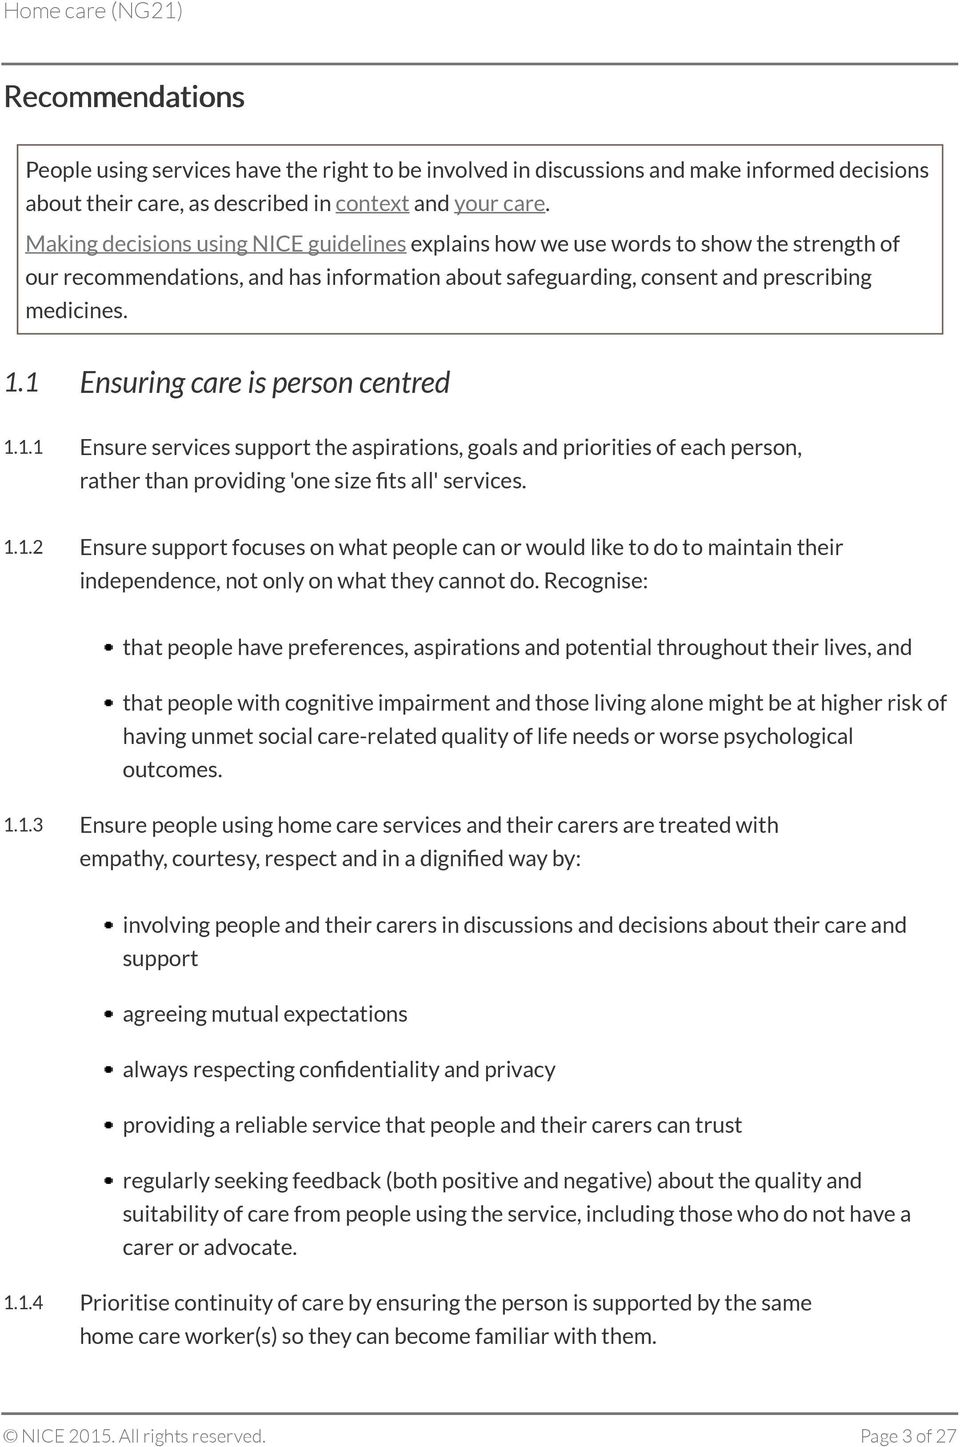 1 Ensuring care is person centred 1.1.1 Ensure services support the aspirations, goals and priorities of each person, rather than providing 'one size fits all' services. 1.1.2 Ensure support focuses on what people can or would like to do to maintain their independence, not only on what they cannot do.